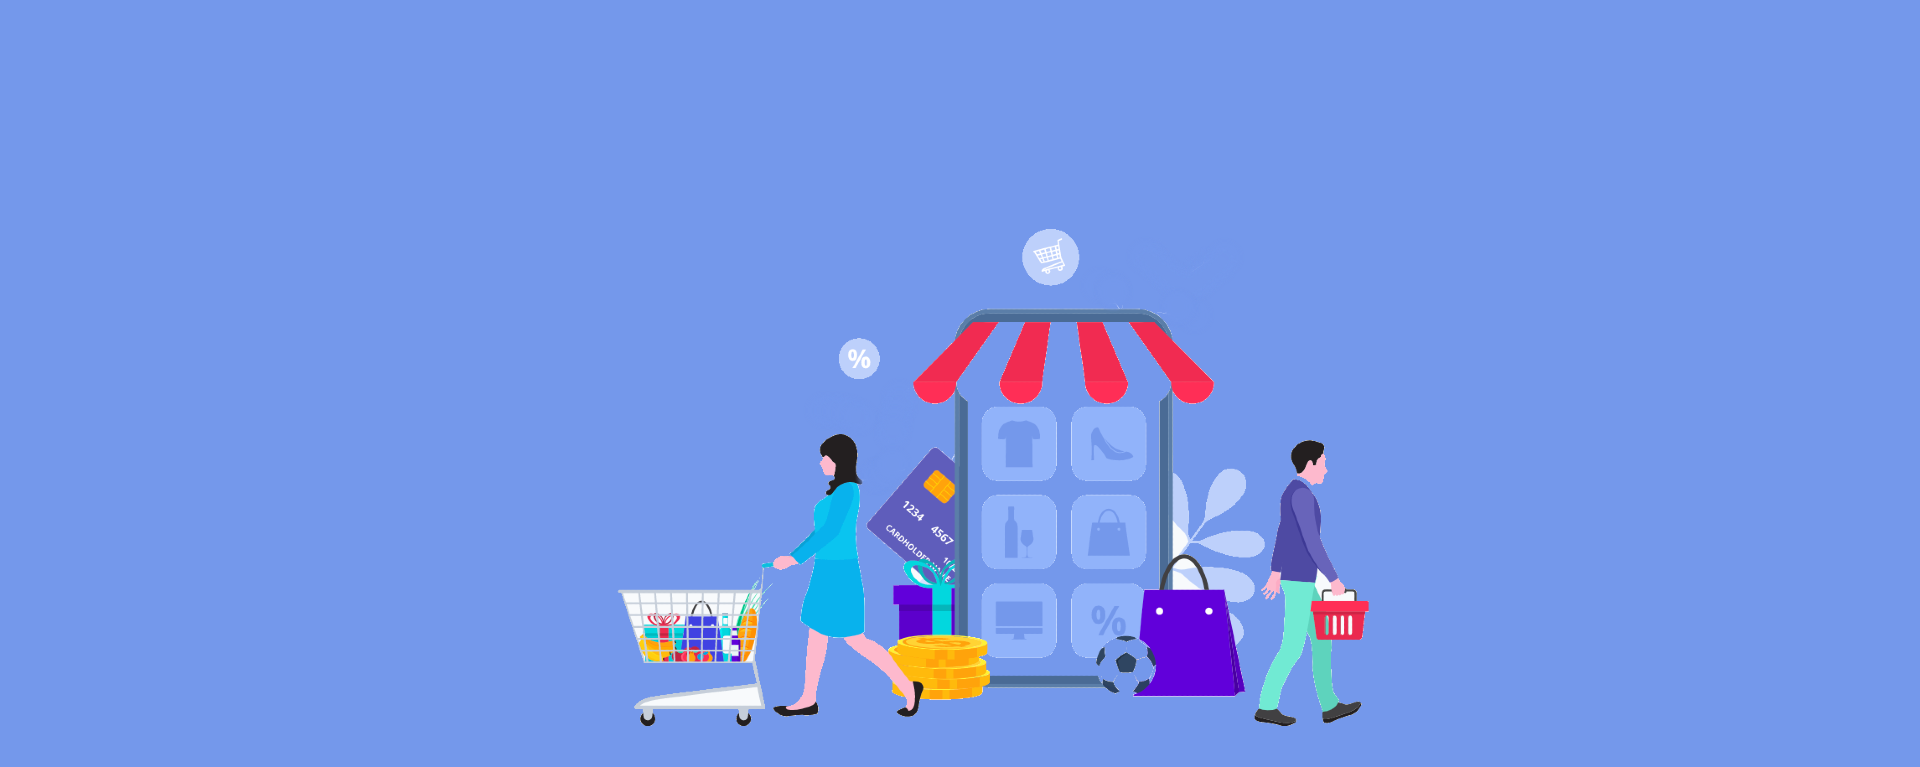 shoppers and digital storefront to illustrate ecommerce erp integration